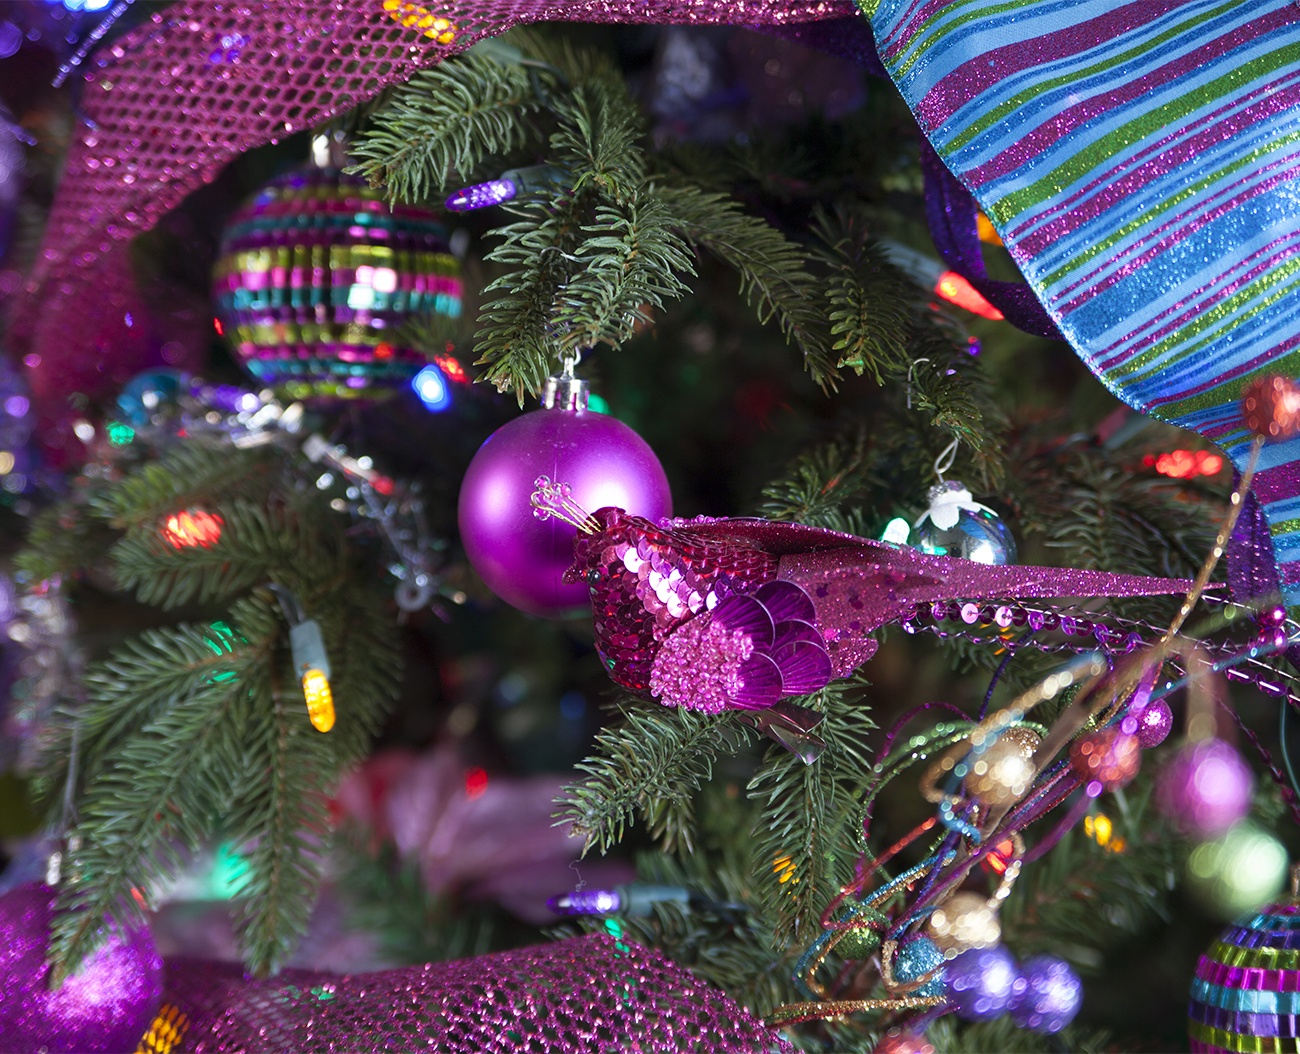 Ornaments for christmas tree - Colorful Kids Christmas Tree Ornaments